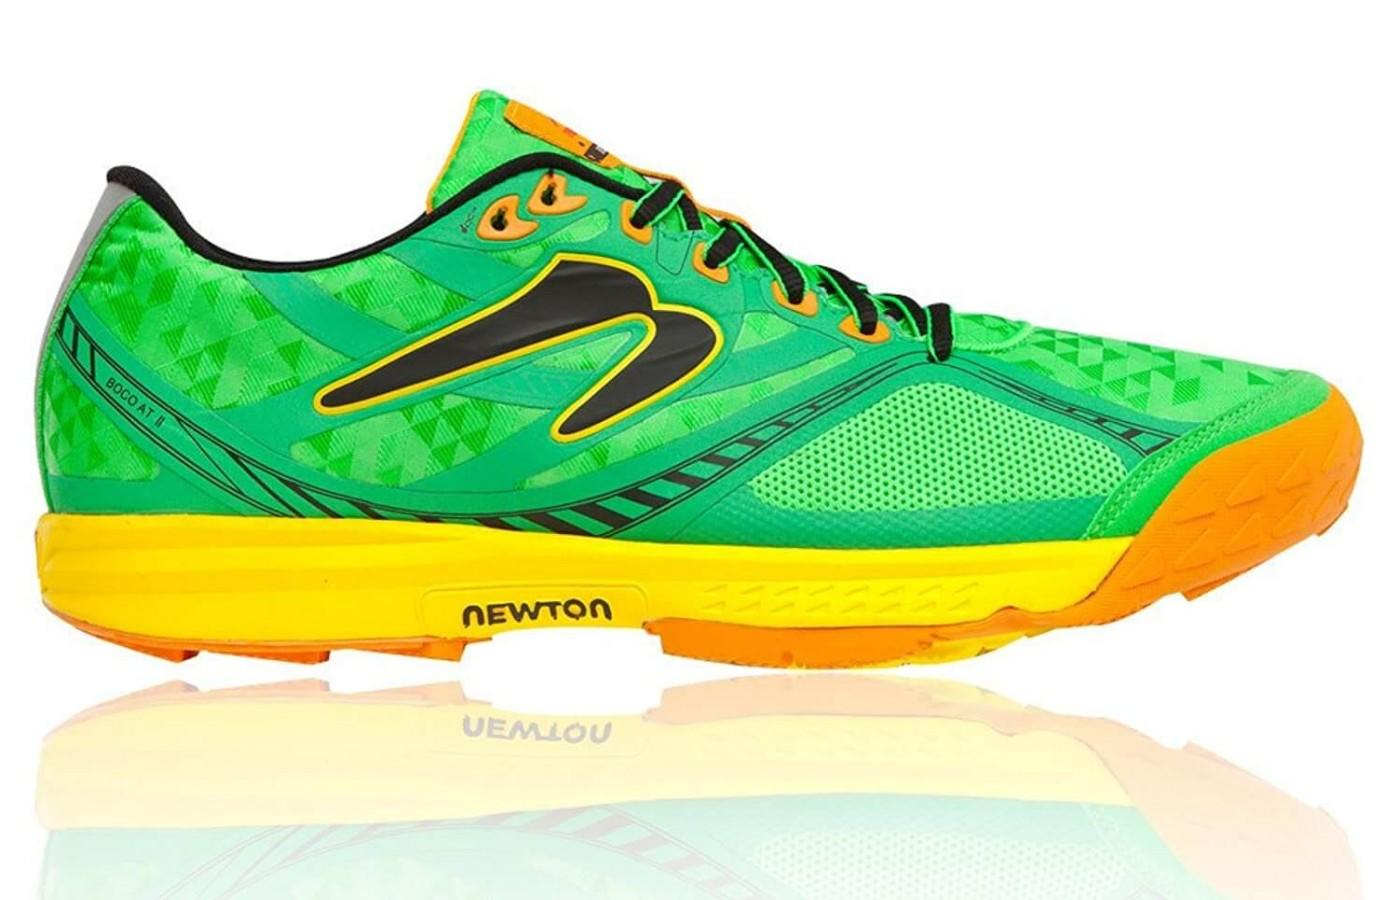 The Newton BoCo AT II is a tough trail shoe designed for any terrain you can throw at it.